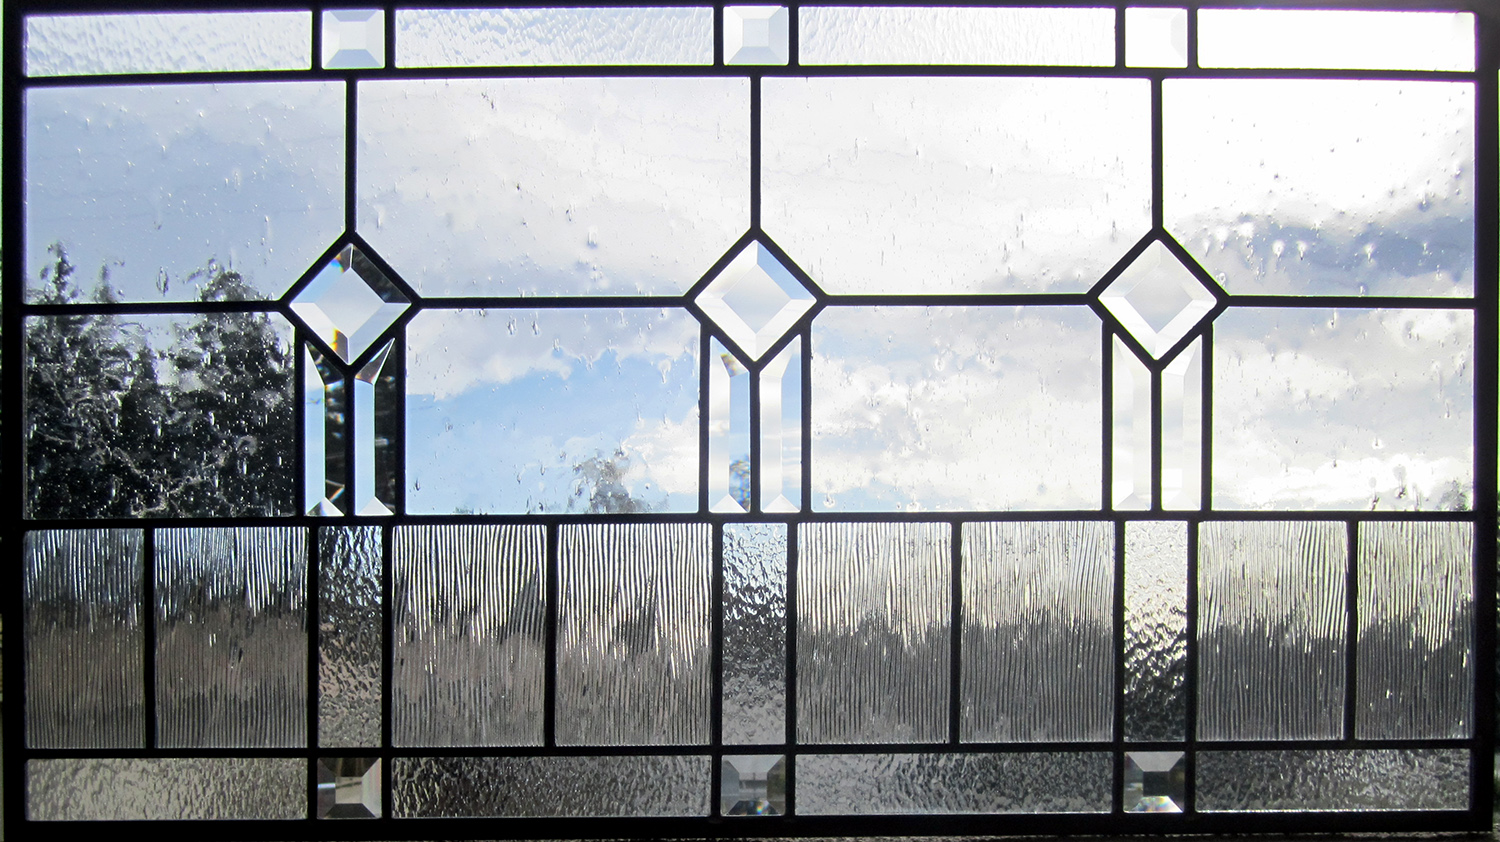 beveled square pencil bevel seedy corded clear texture glass craftsman leaded glass stained glass window palo alto atherton california san francisco san jose.jpg